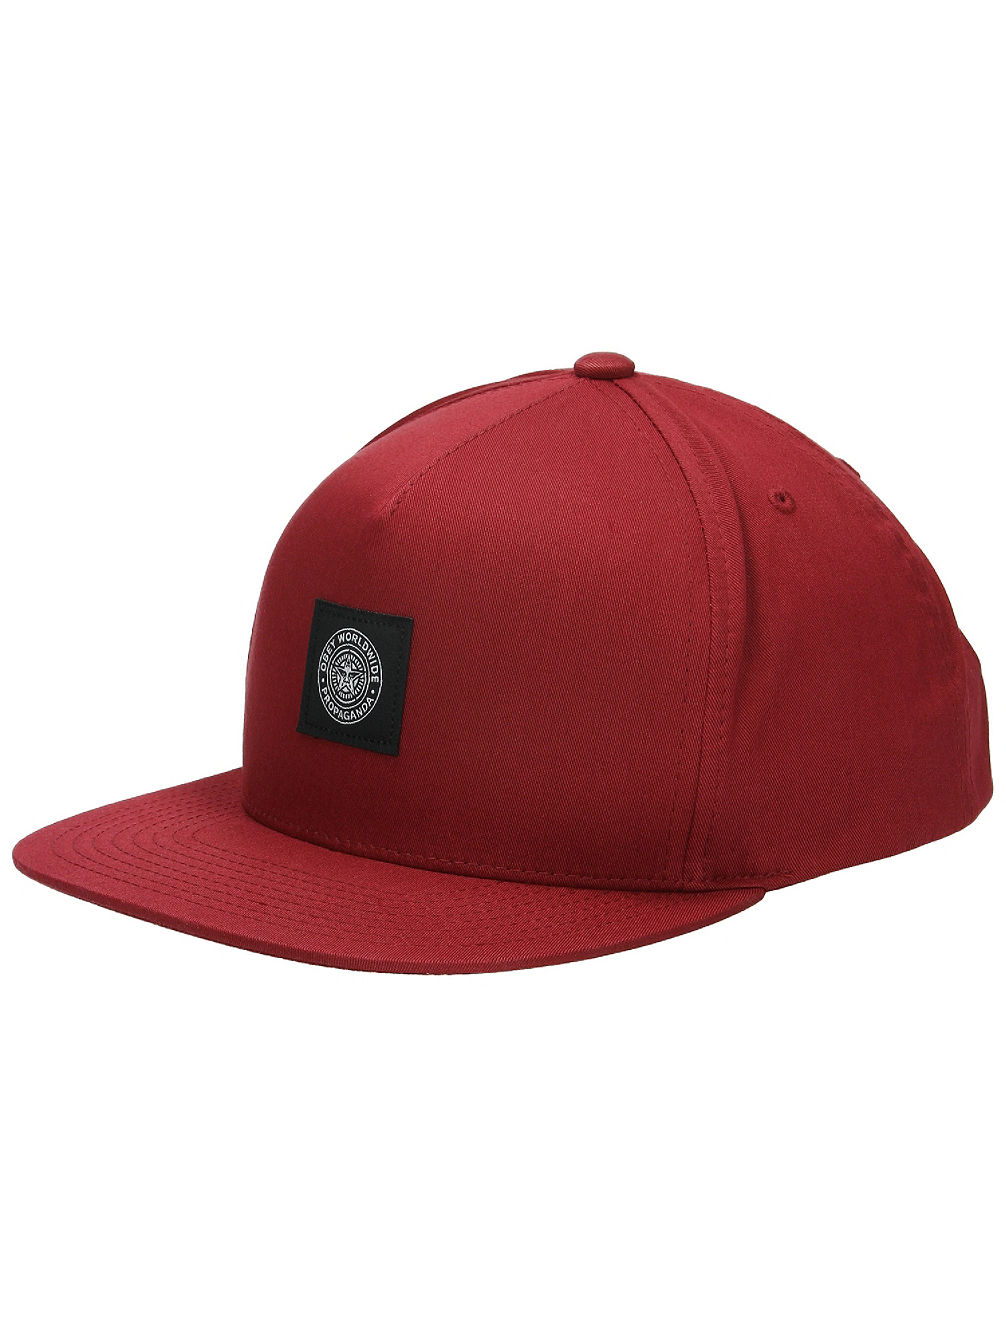 obey-worldwide-seal-snapback-cap